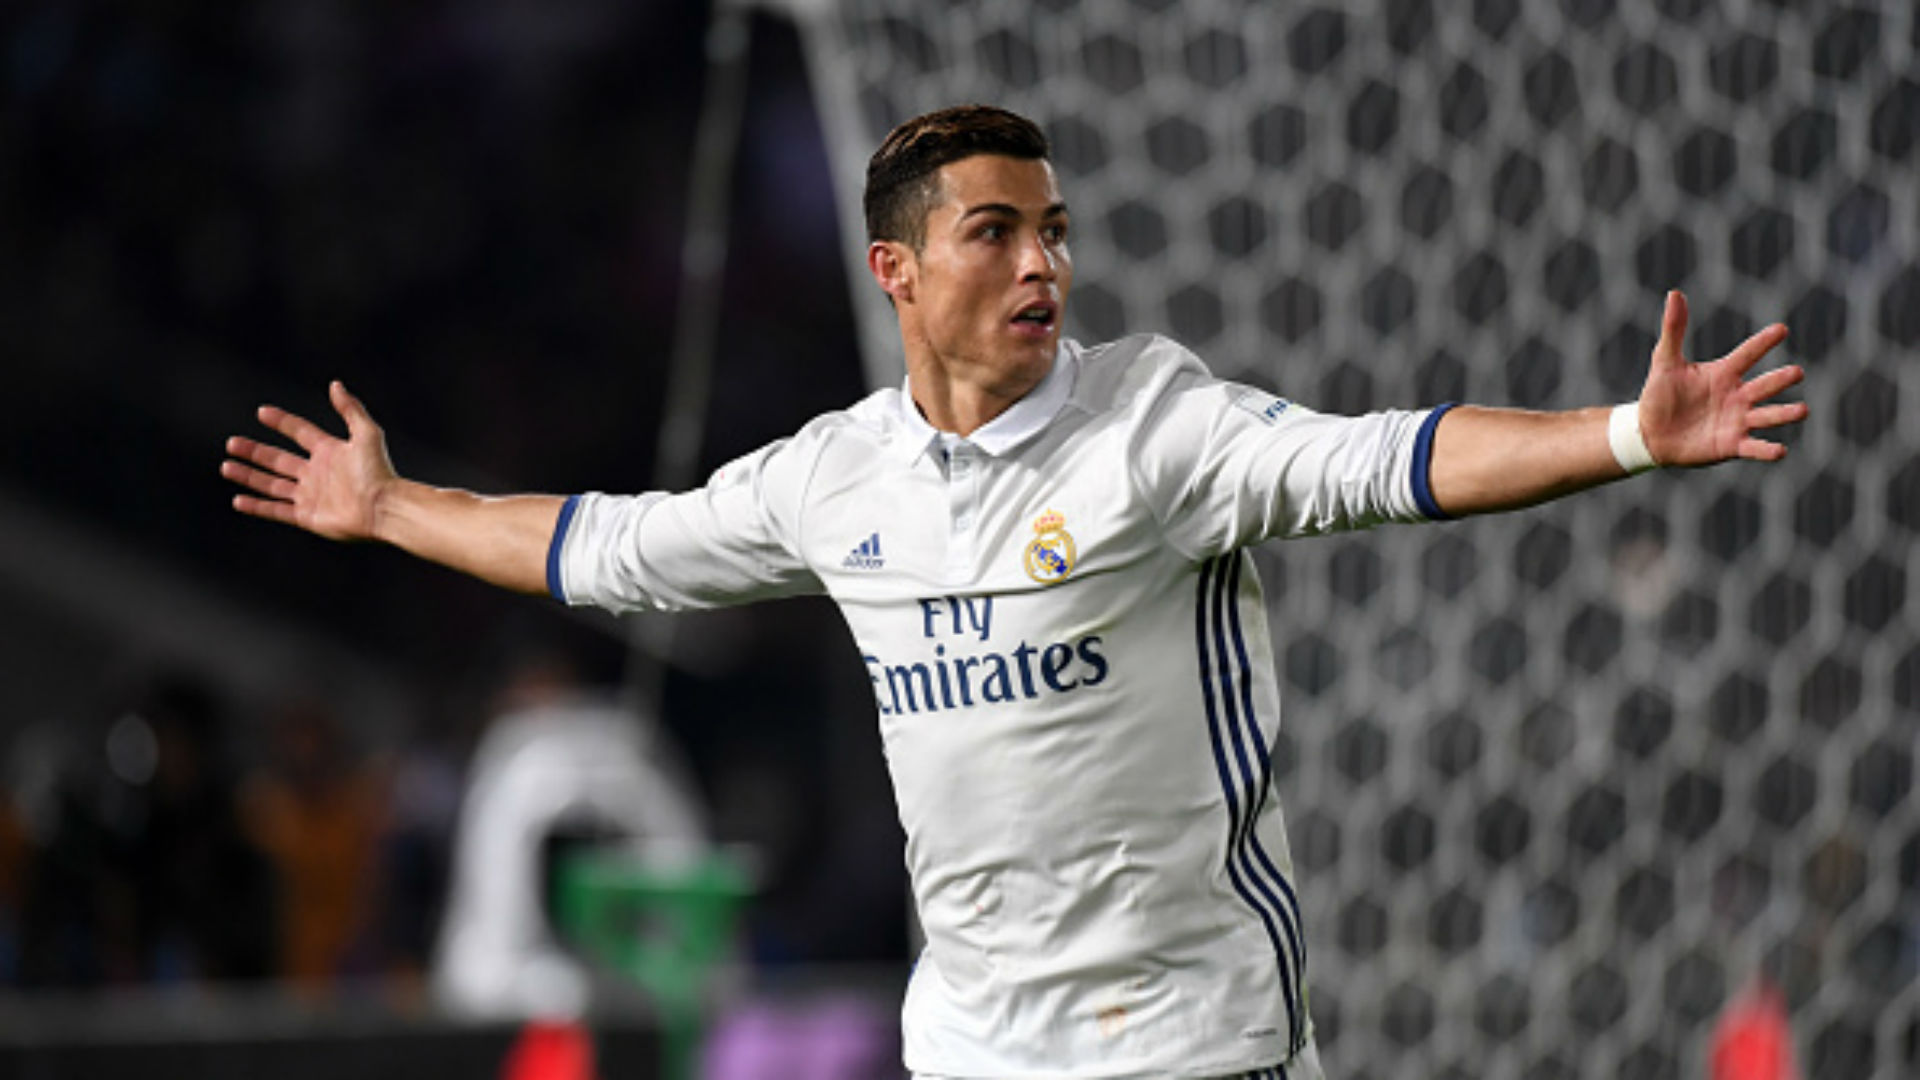 Cristiano Ronaldo Real Madrid FIFA Mundial de Clubes World Club Cup December 2016